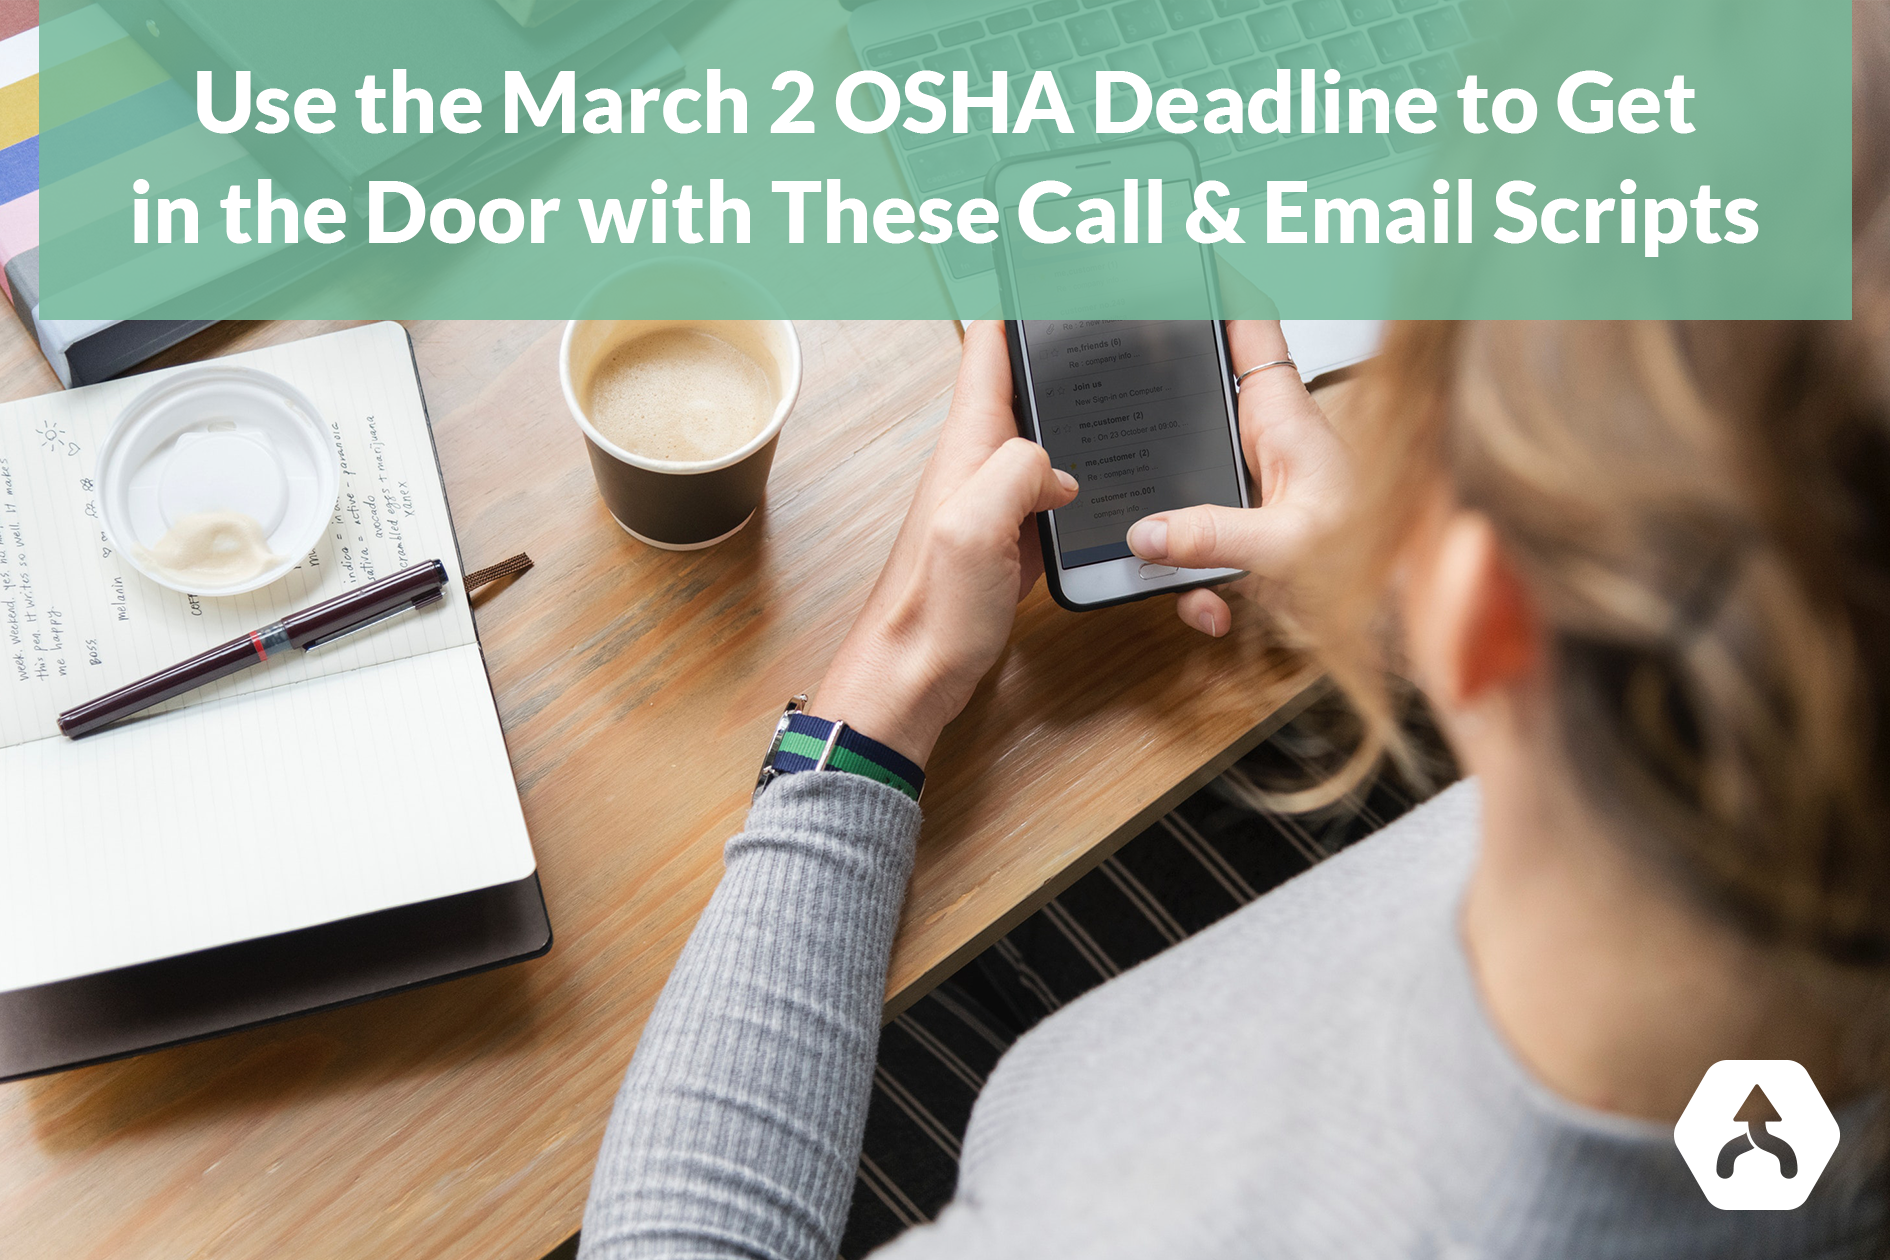 Use the March 2 OSHA deadline to get in the door with these call & email scripts